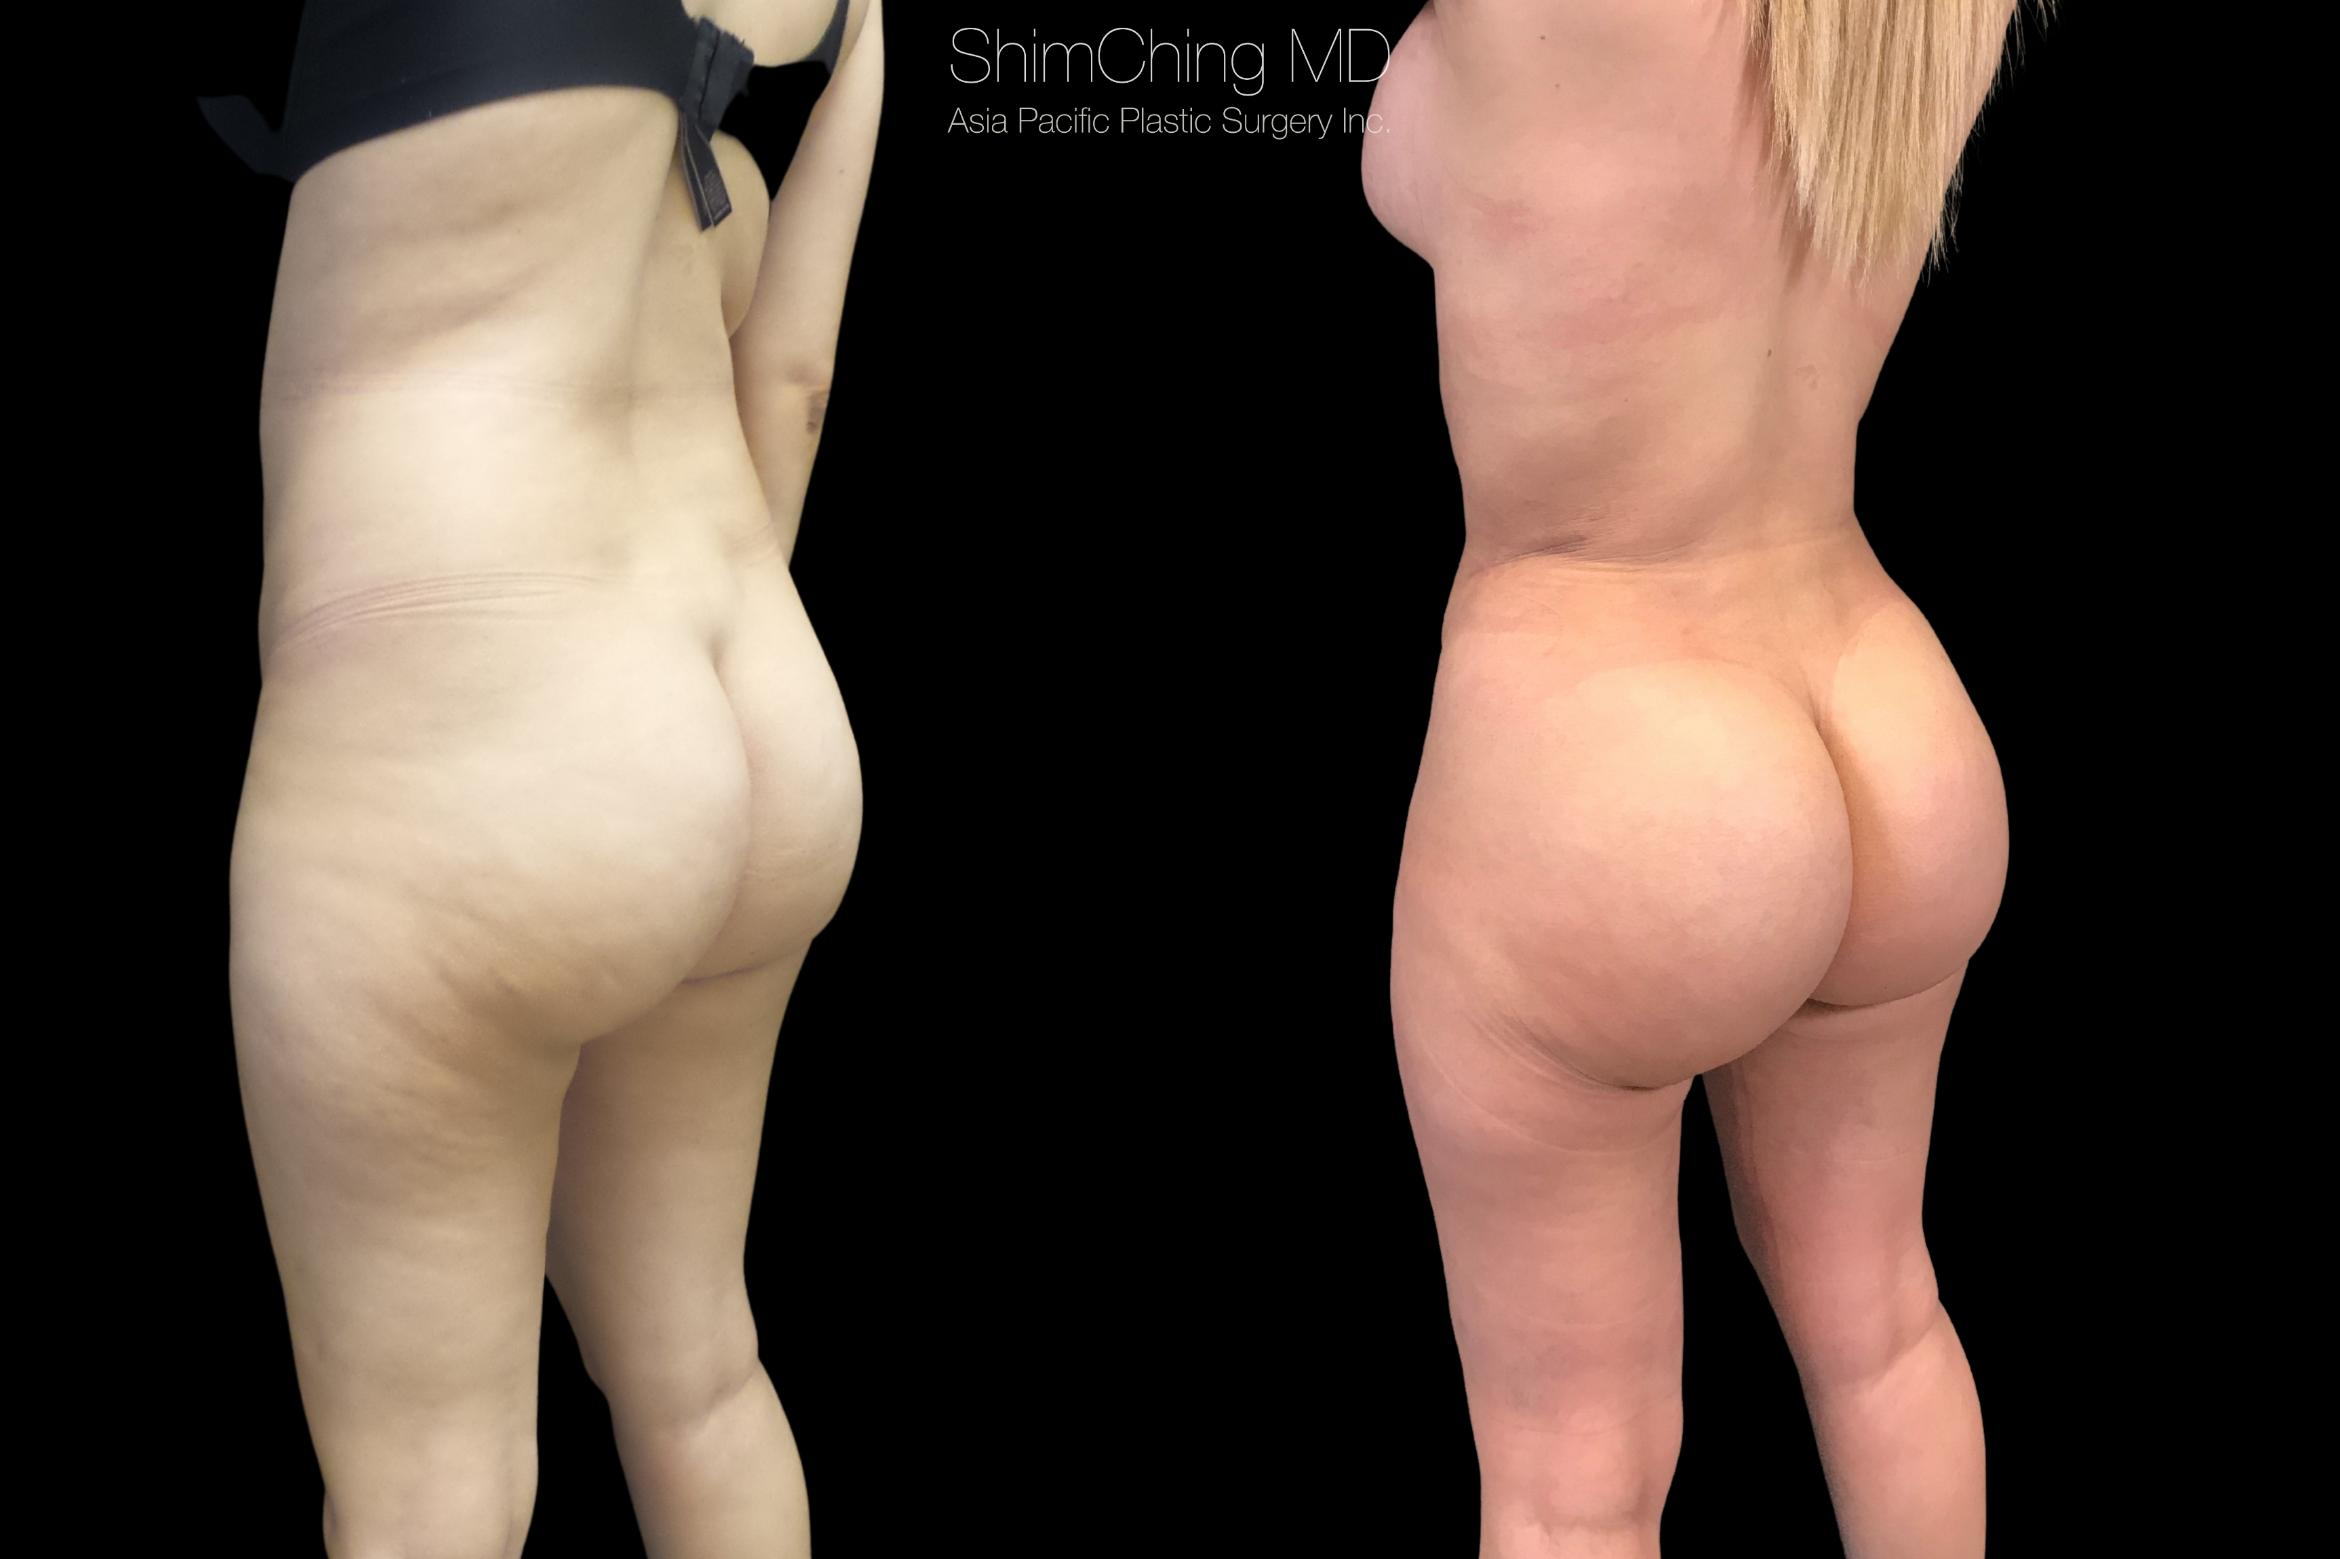 Brazilian Butt Lift Case 289 Before & After Right Oblique | Honolulu, HI | Shim Ching, MD: Asia Pacific Plastic Surgery